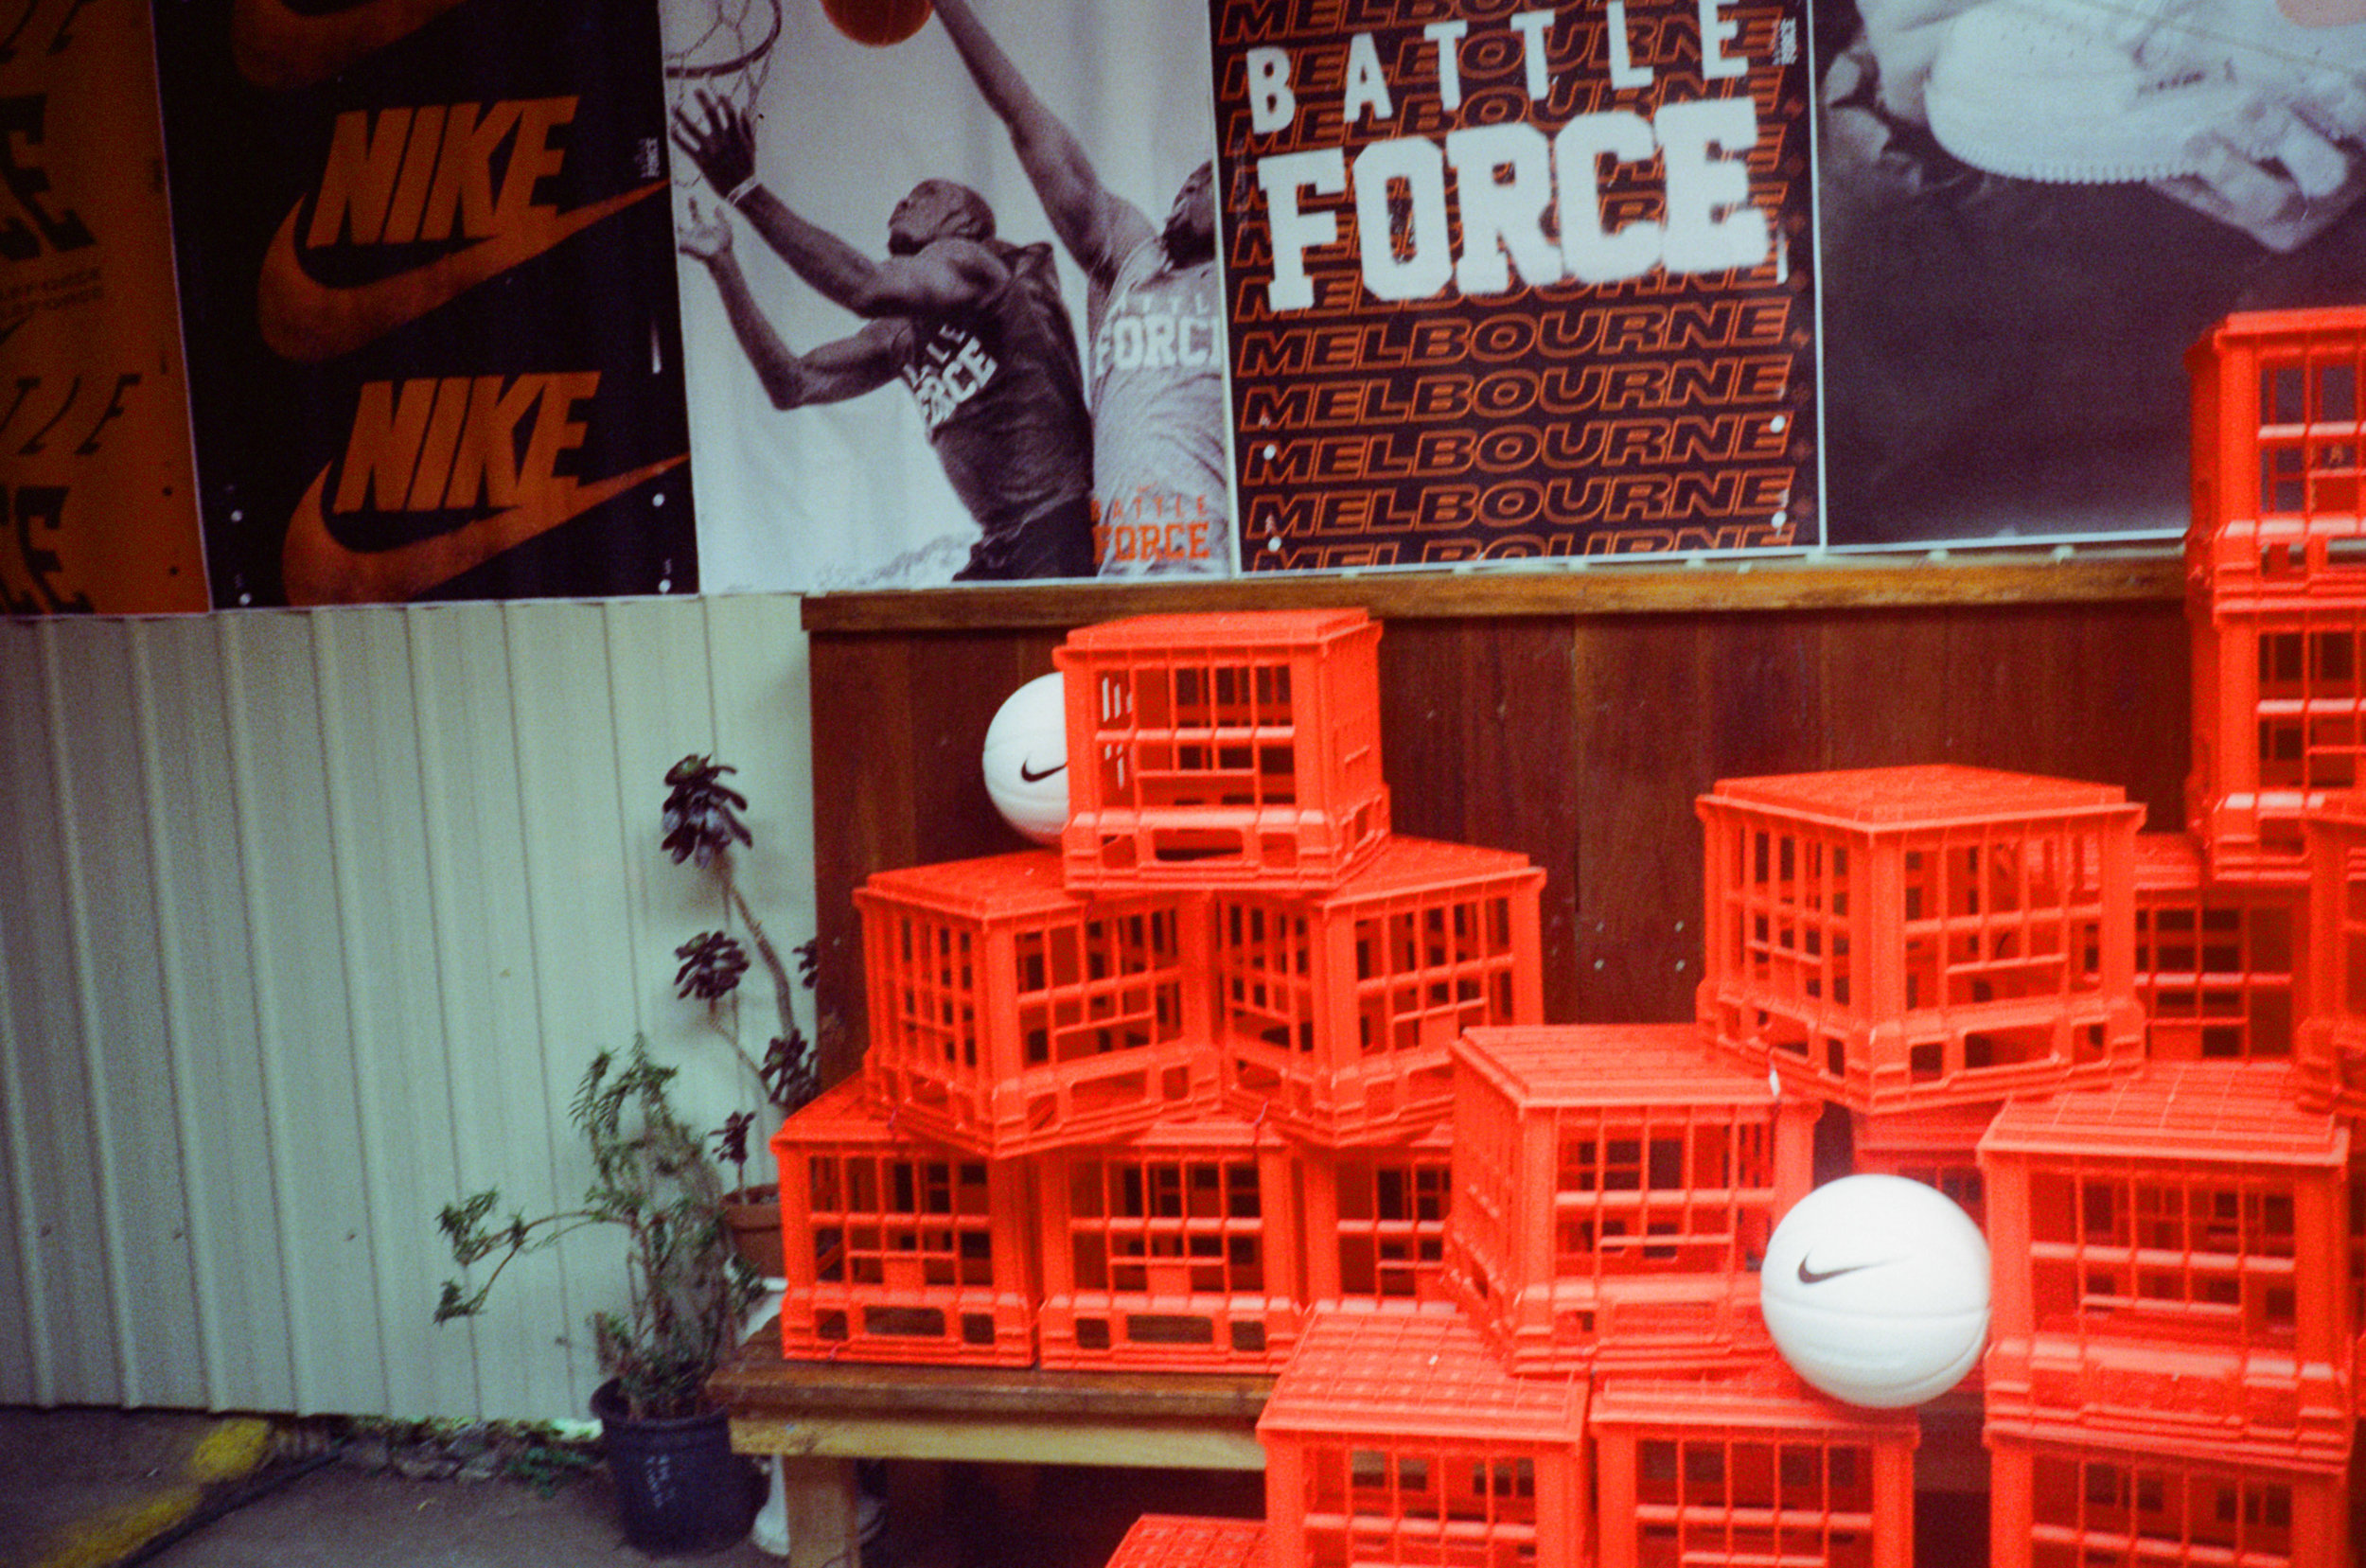 nikebattleforce_35mm_chrisloutfy-65.jpg